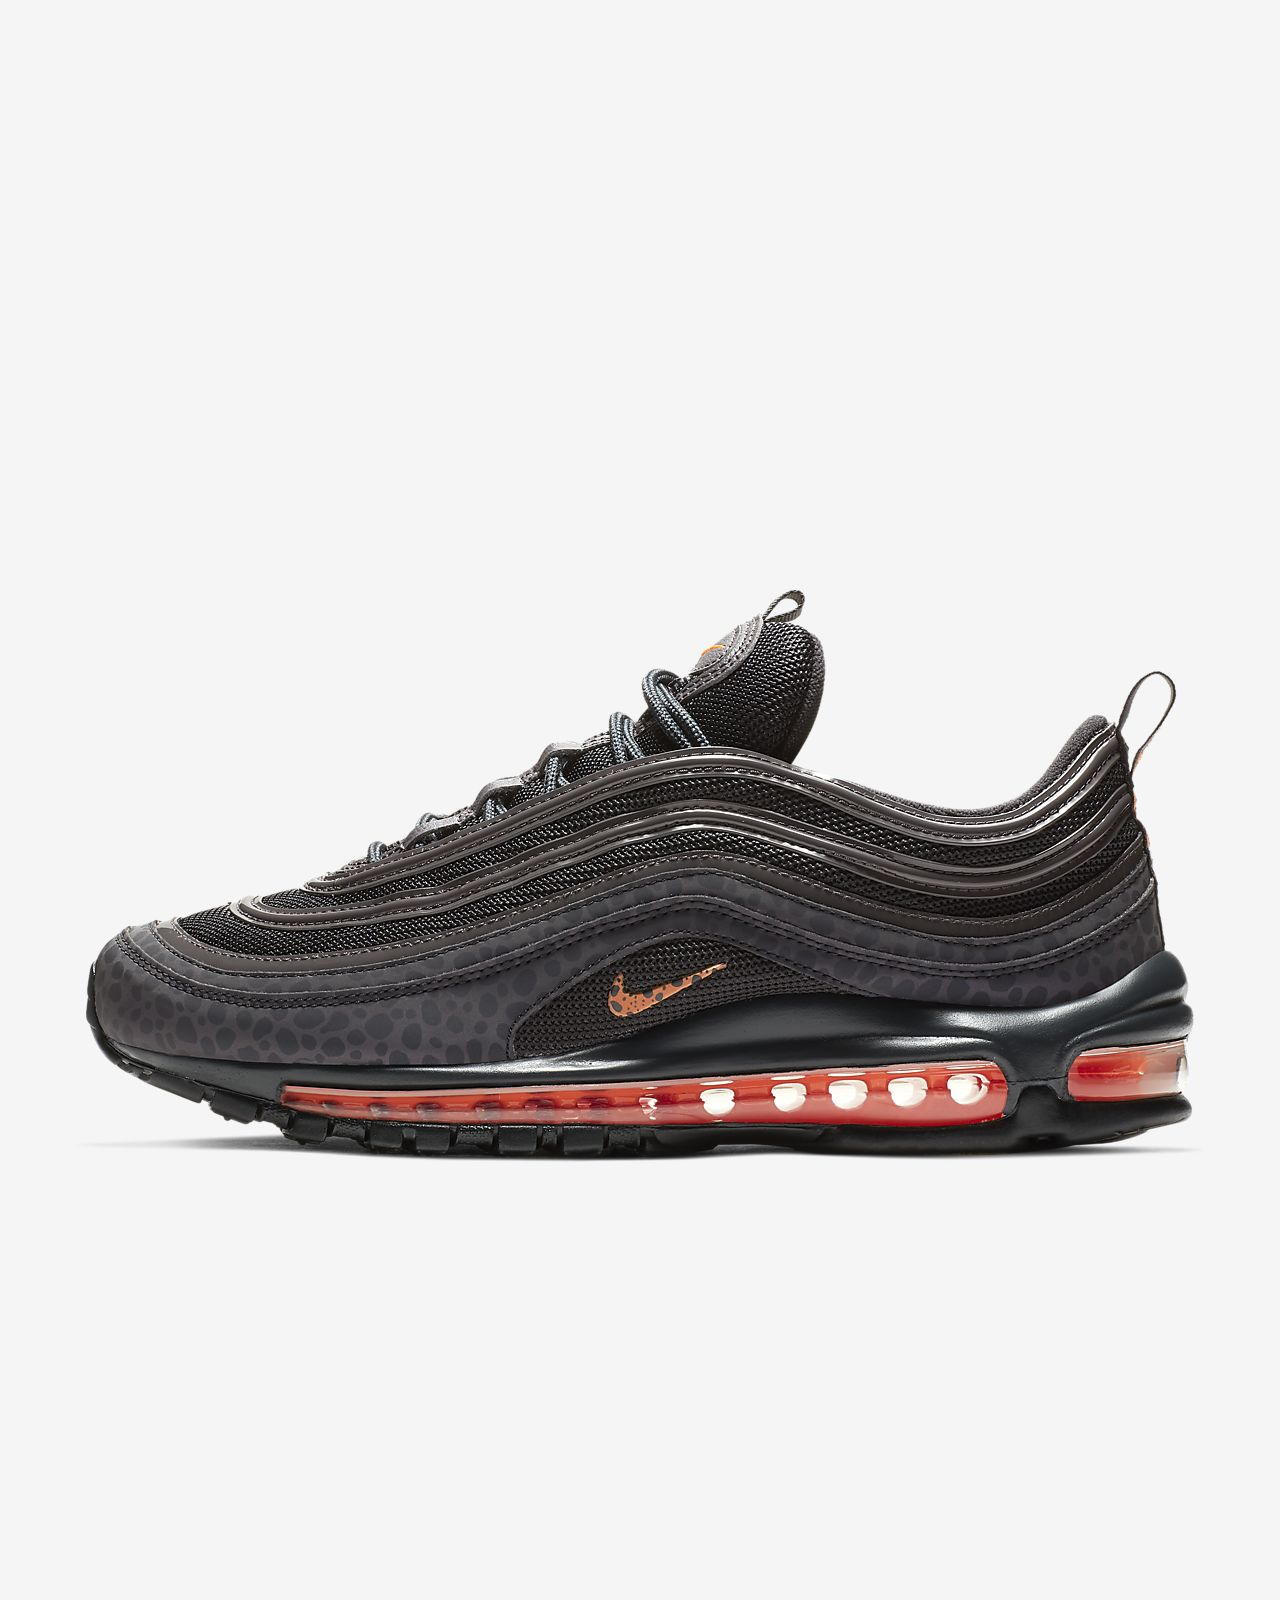 hot sale online 54dcb 2e32c ... Nike Air Max 97 SE Reflective Men s Shoe